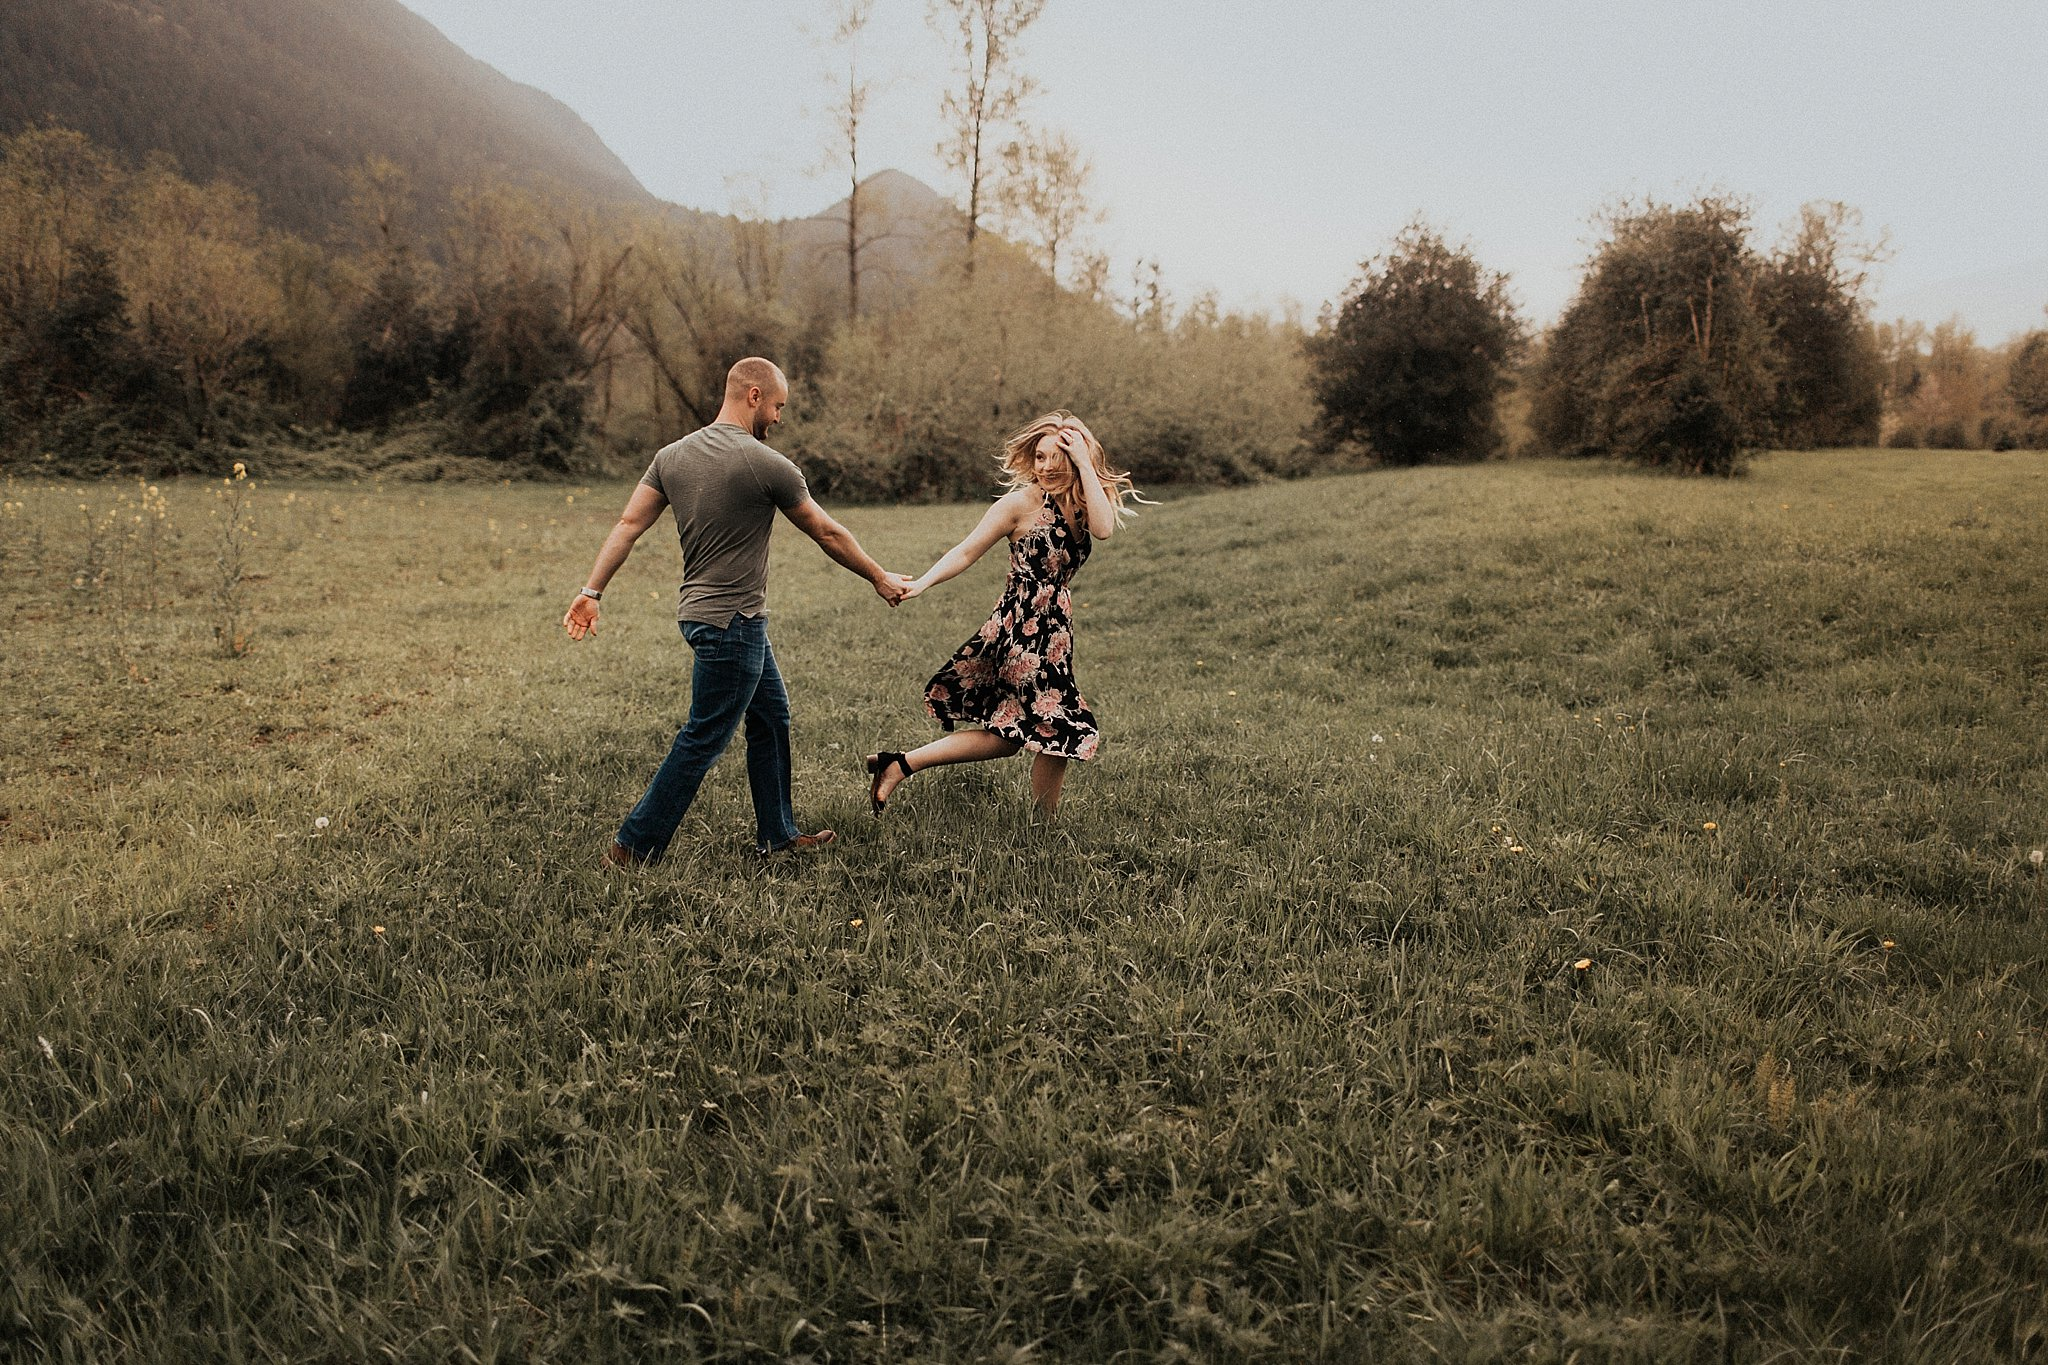 samantha_mcfarlen_bellingham_washington_engagement_photography_seattle_wedding_photographer_0299.jpg